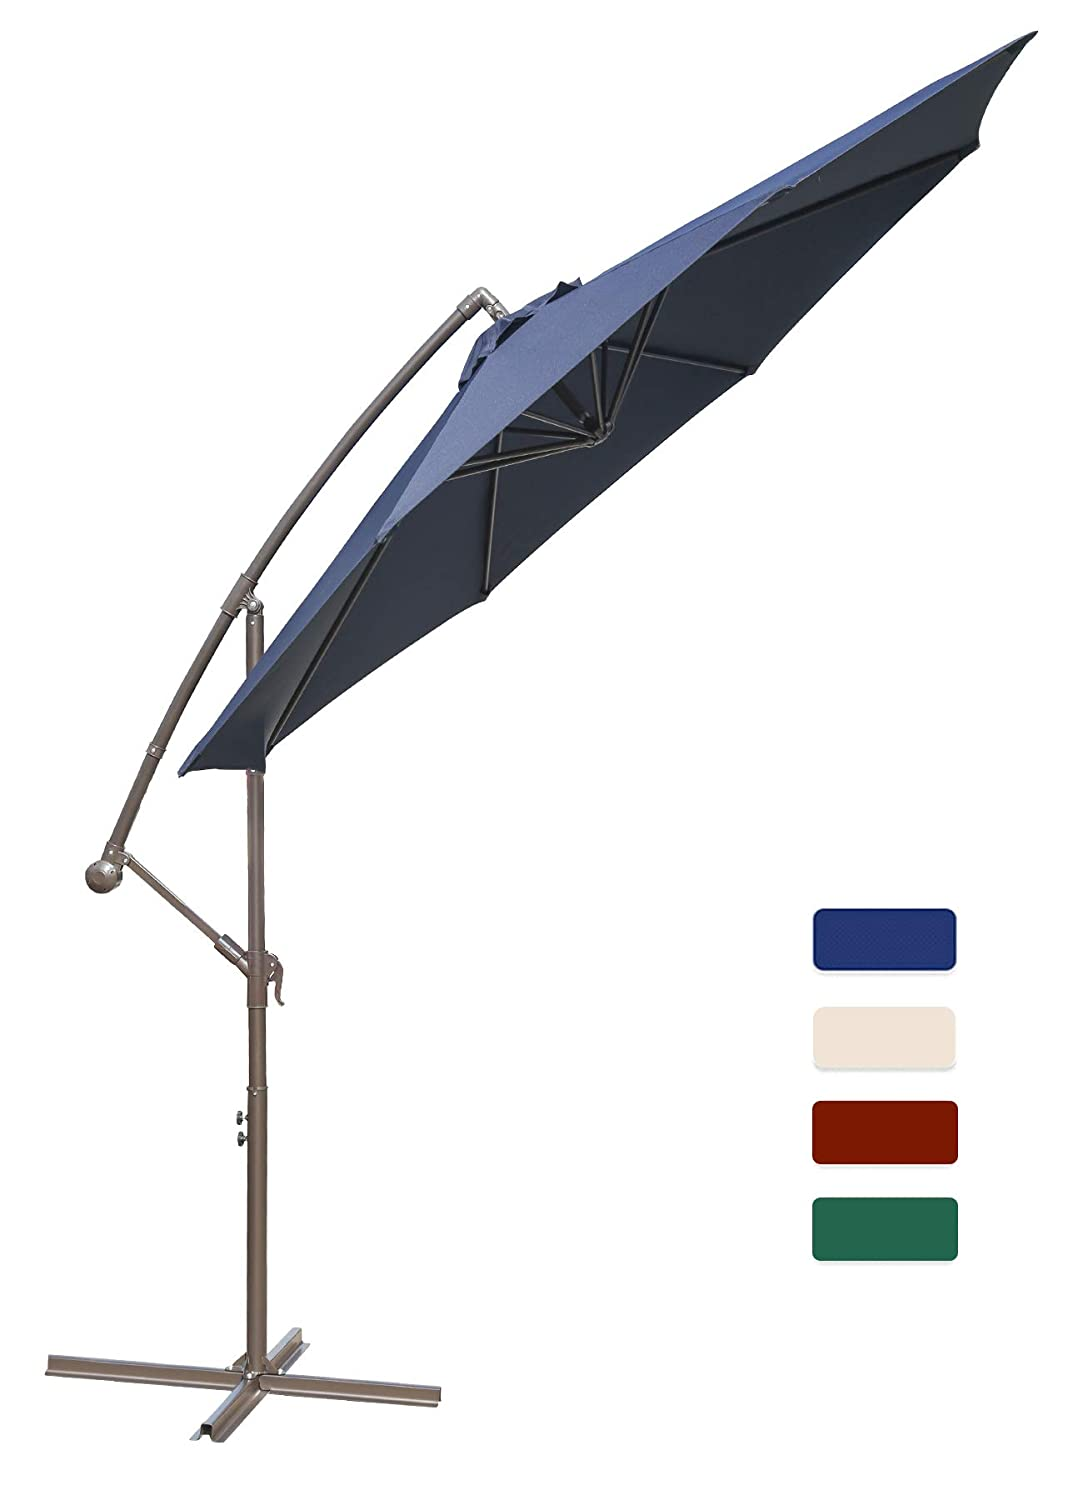 HASLE OUTFITTERS Offset Patio Umbrella 10FT Cantilever Umbrella Outdoor Market Umbrella Hanging Umbrella with Cross Base Navy